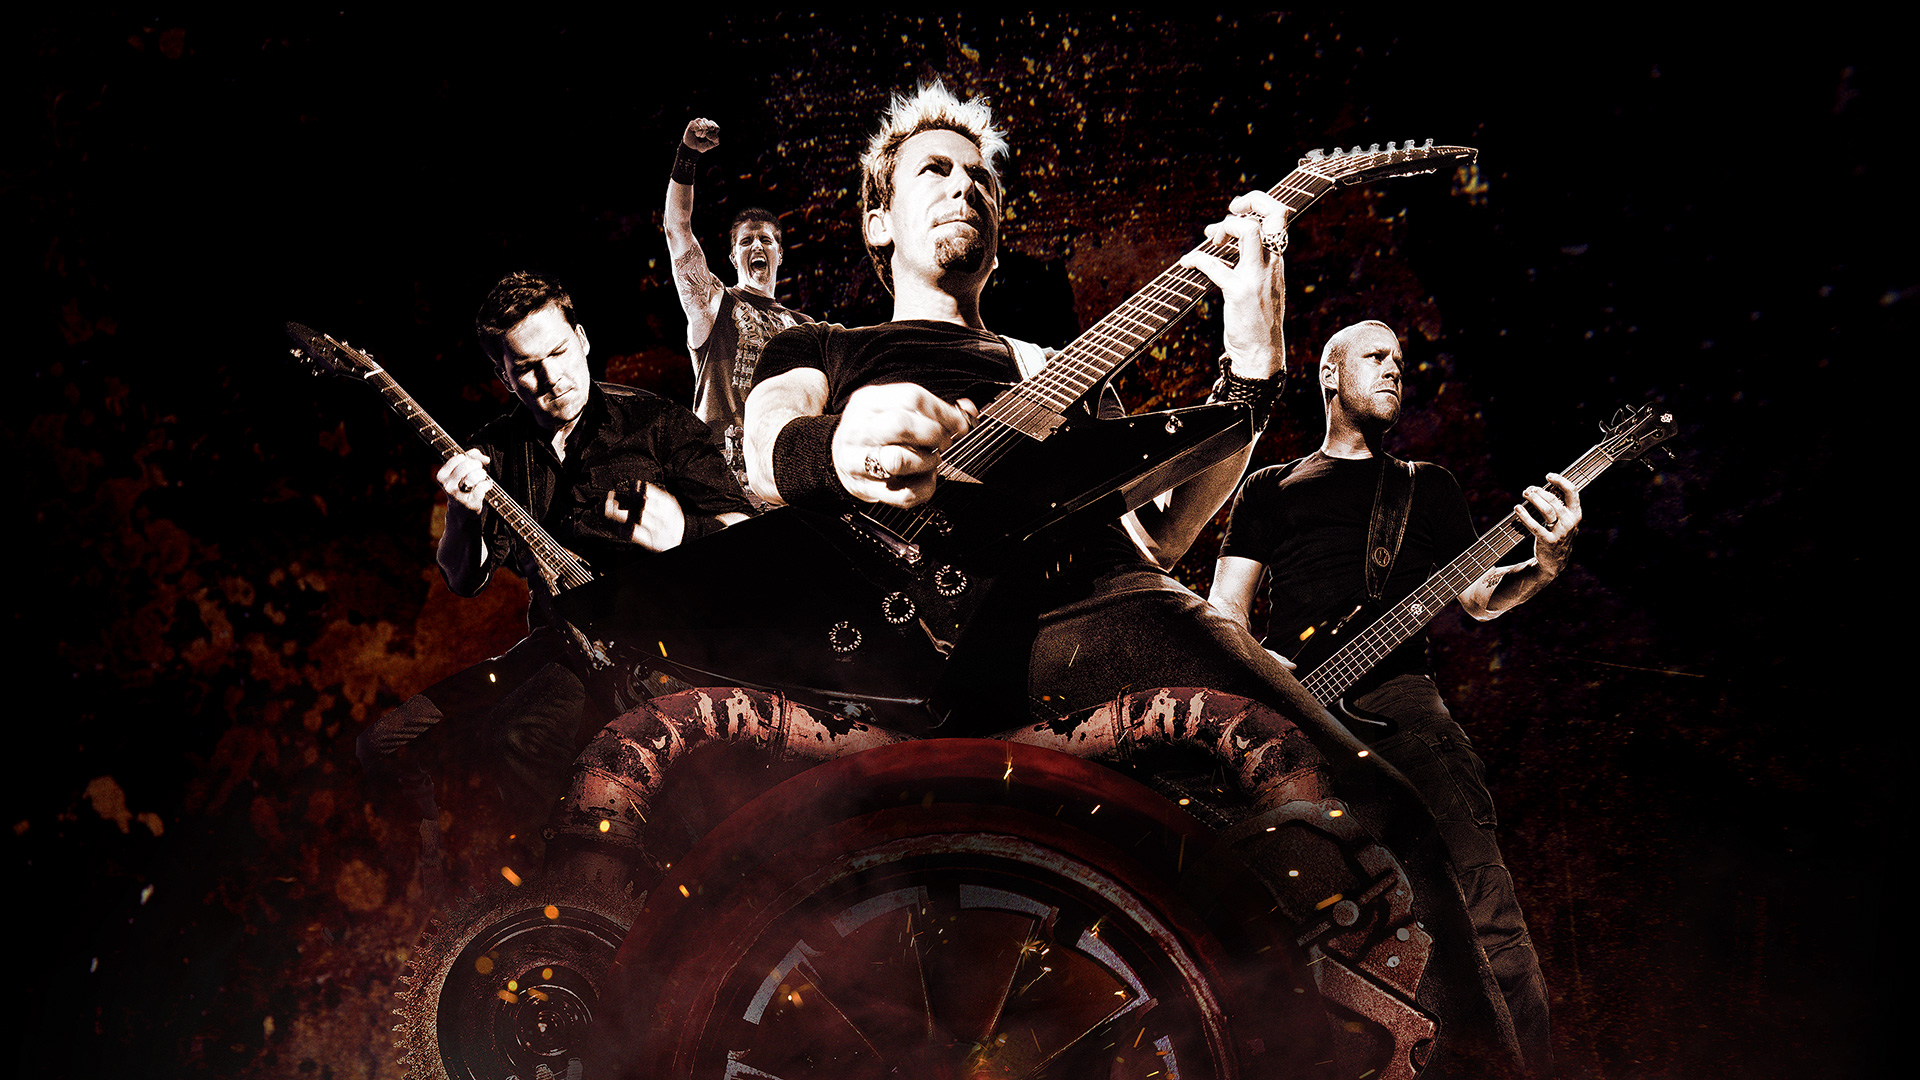 Nickelback: September 28, 2017 | Rogers Place